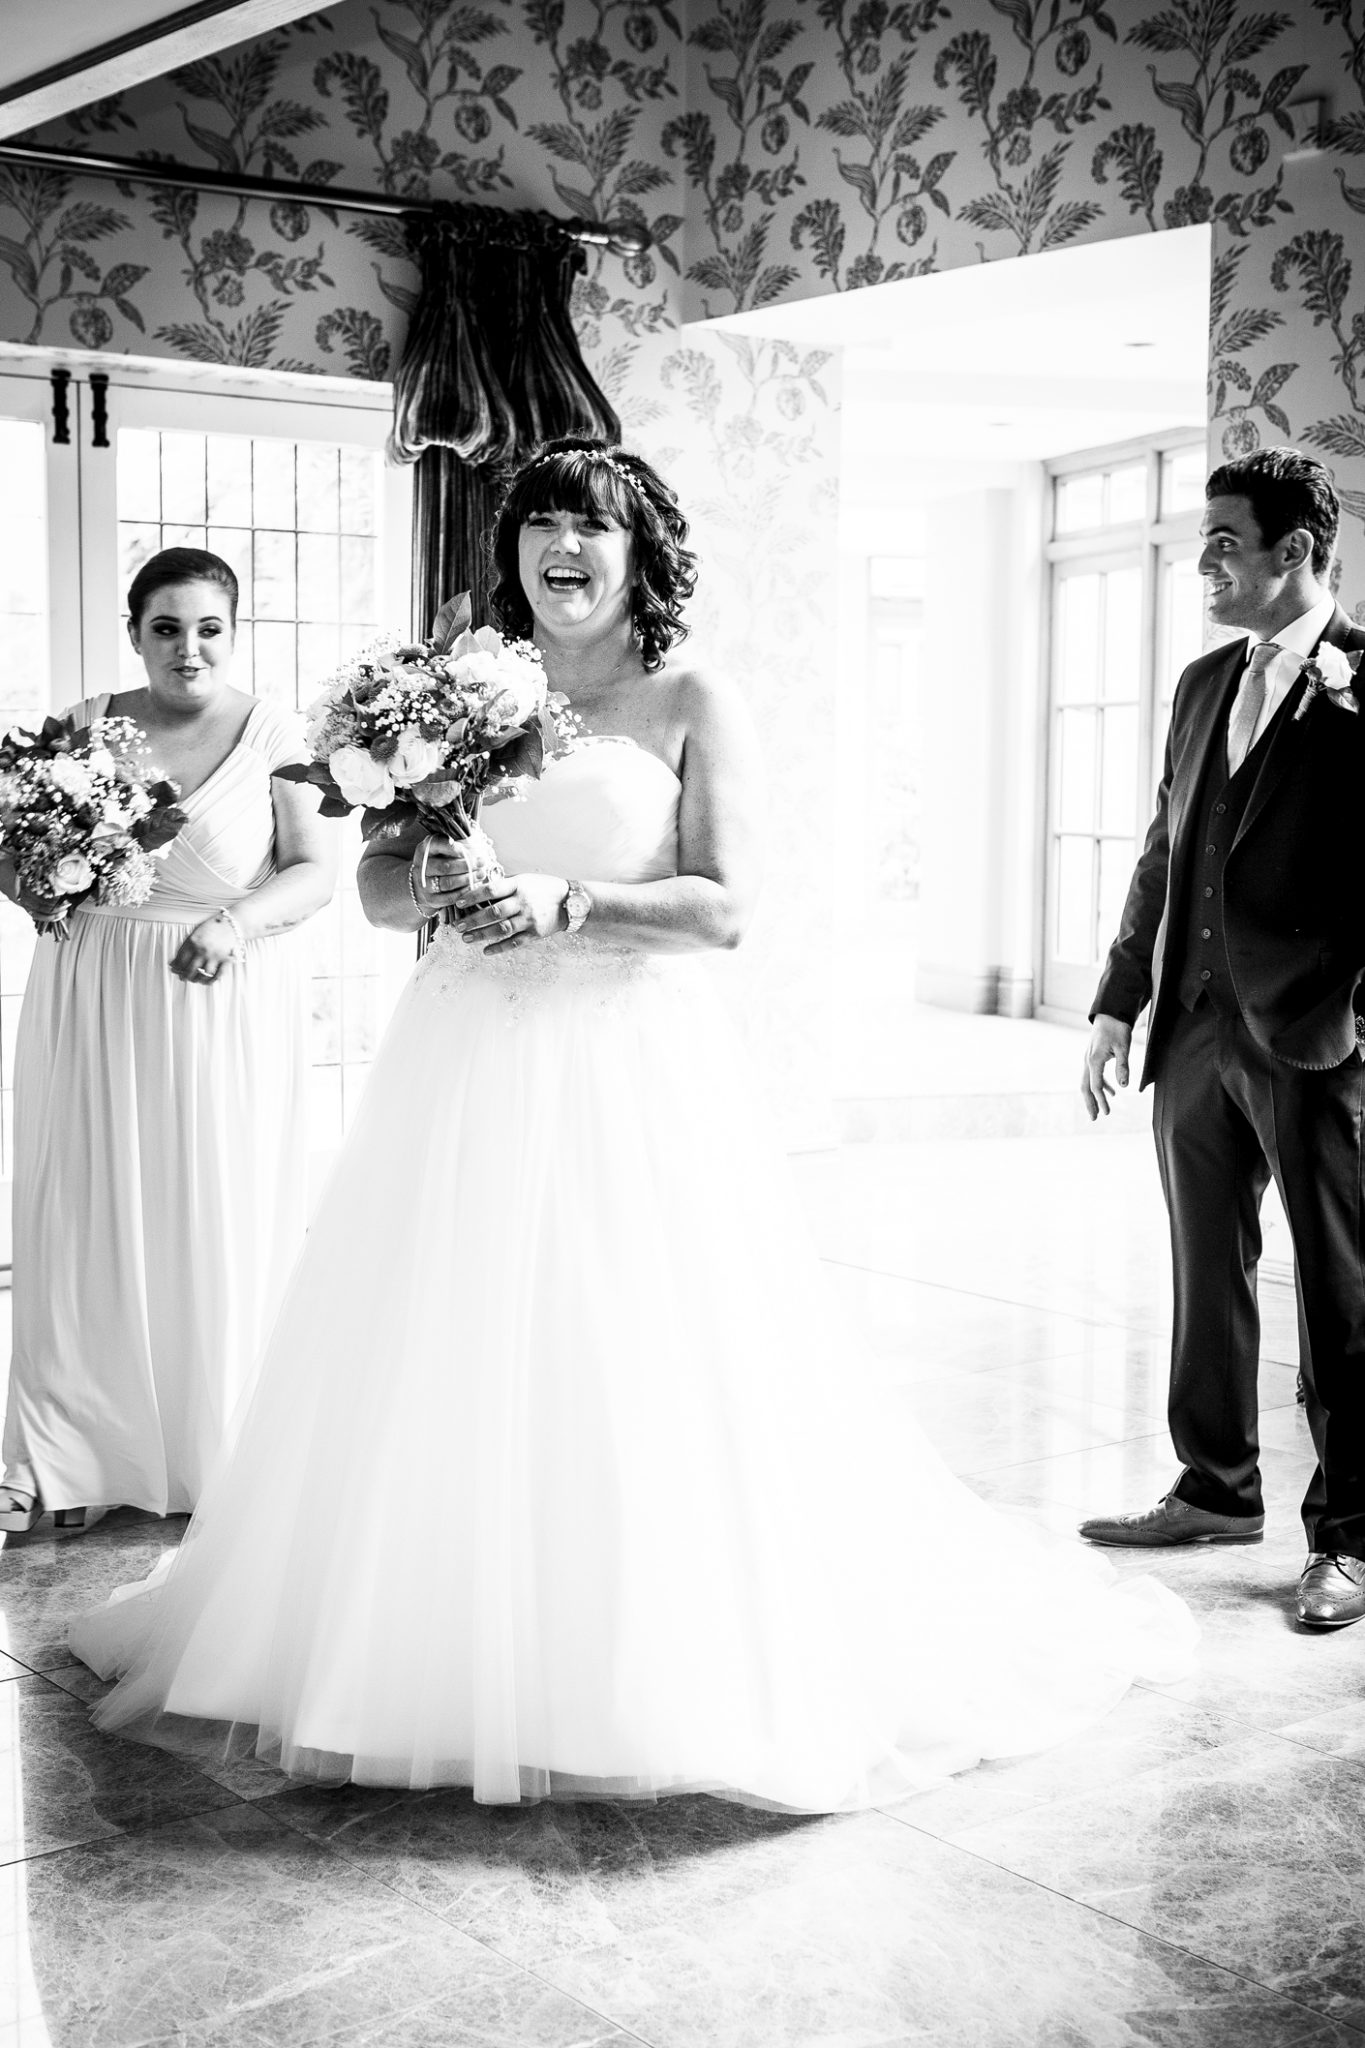 relaxed-informal-wedding-photography-at-merrydale-manor-knutsford-cheshire